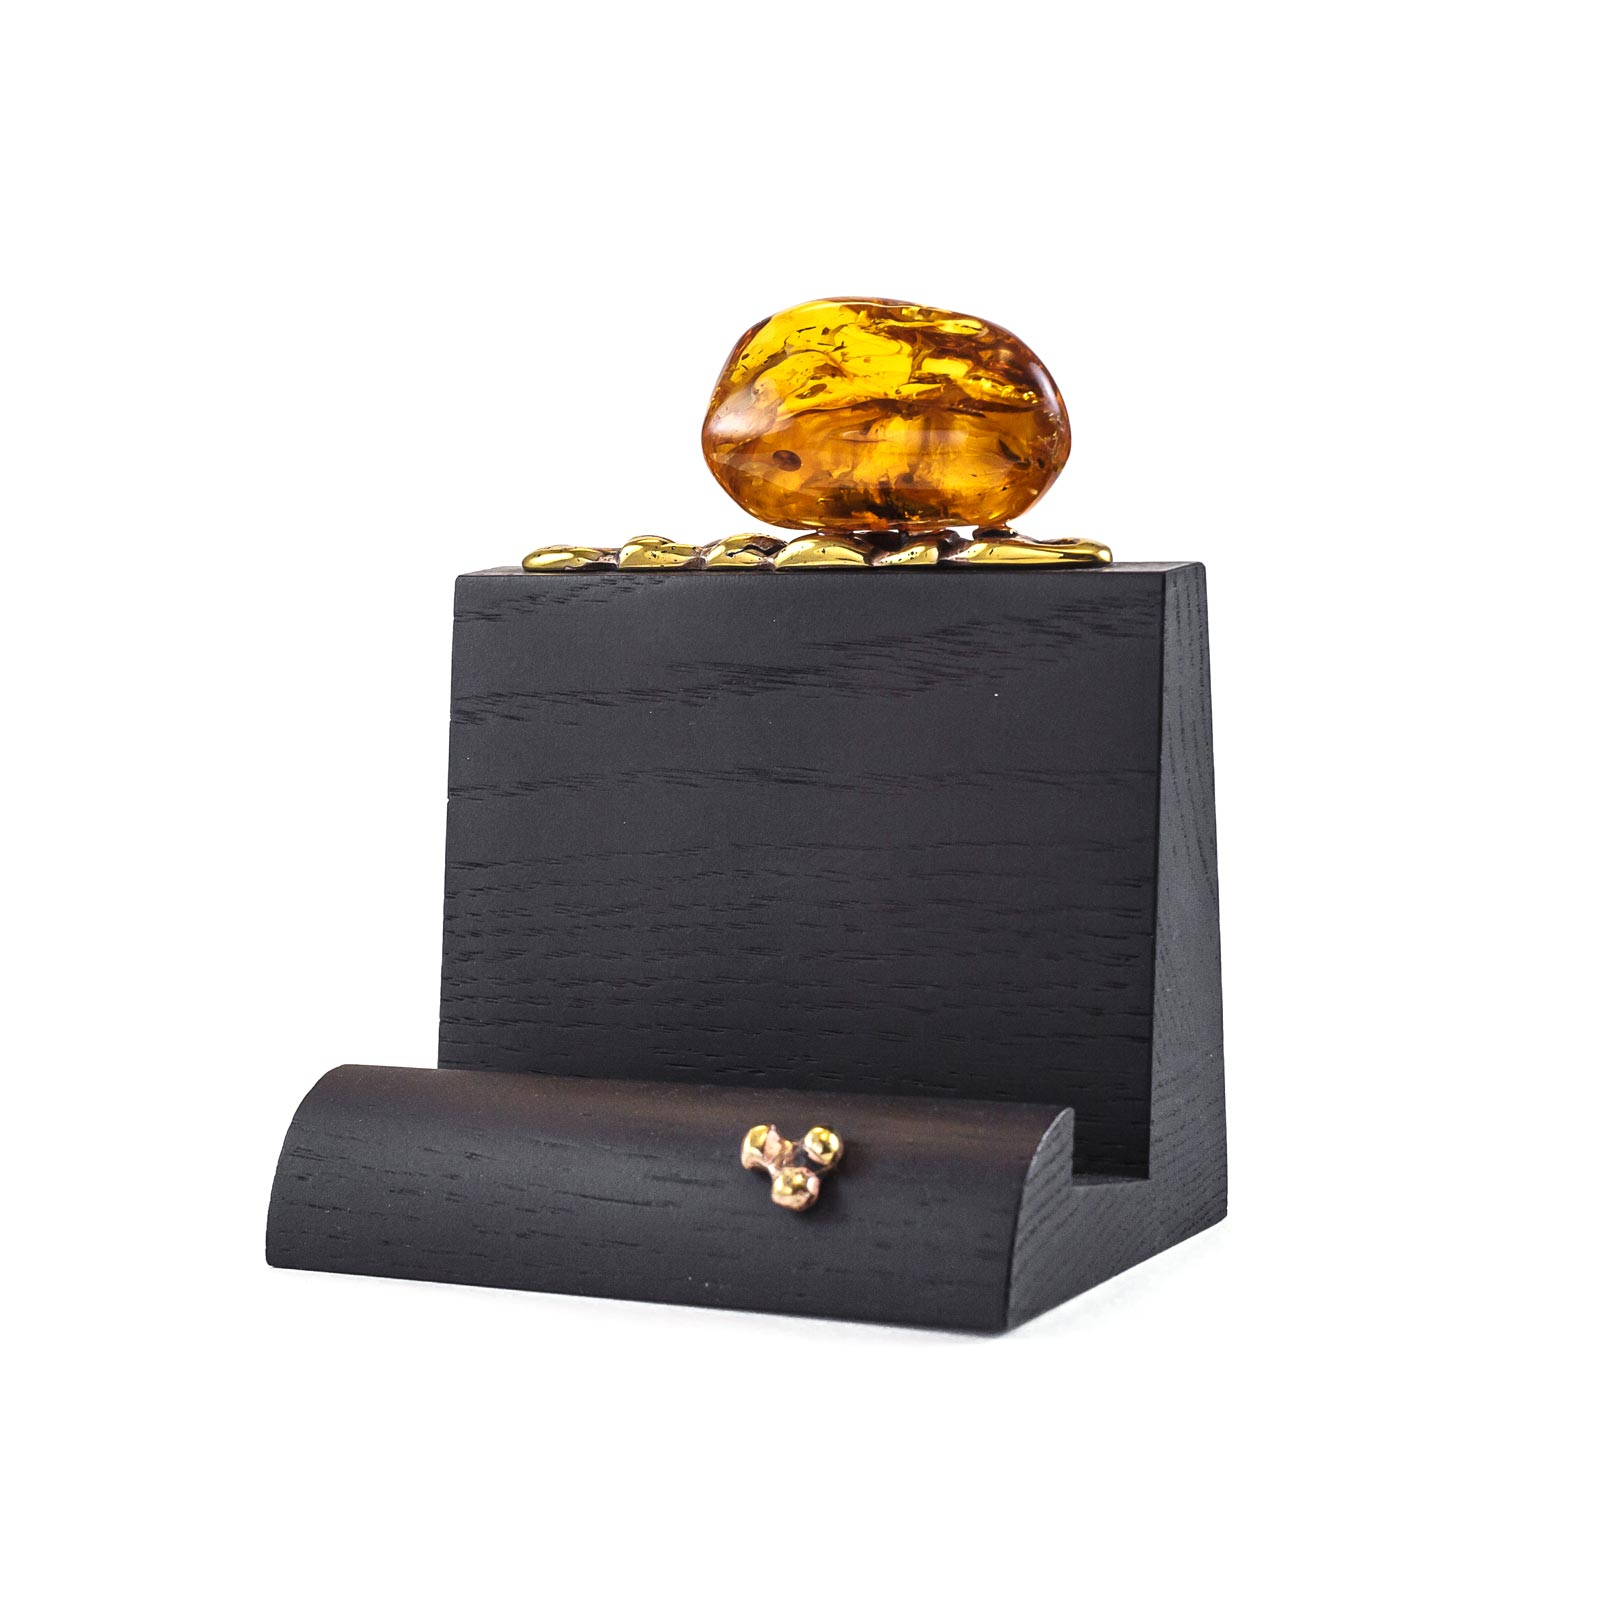 Business Card Holder with Natural Baltic Amber Piece